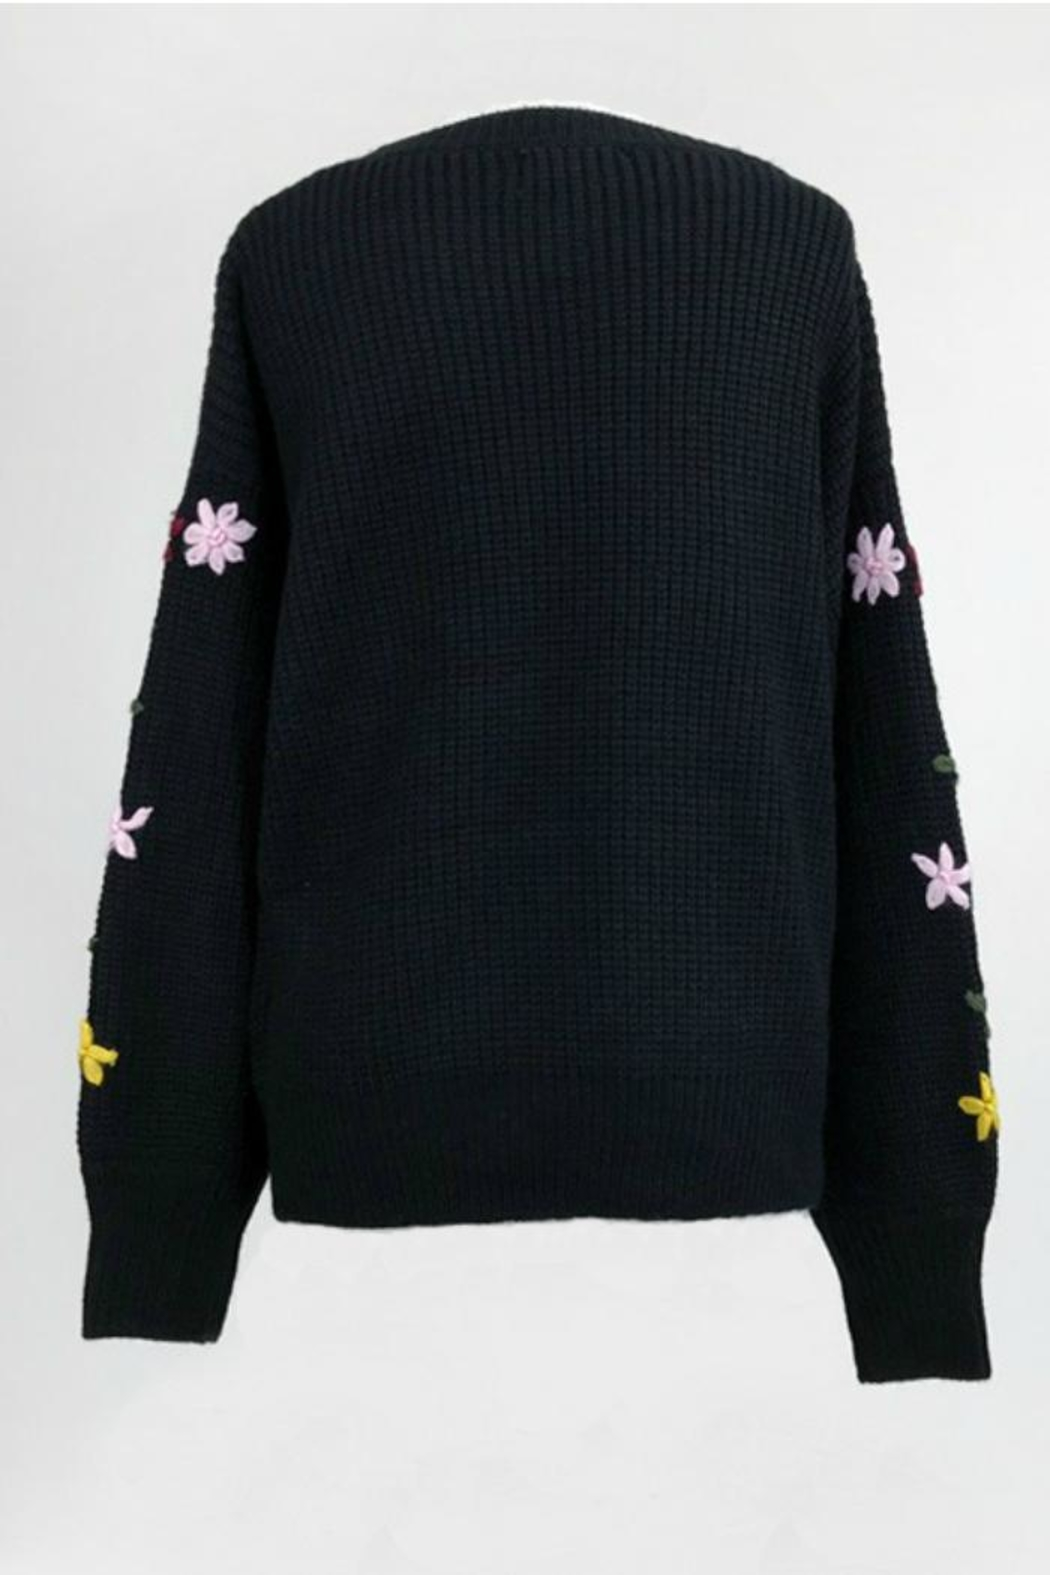 Dreamers Embroidered Black Sweater - Front Full Image